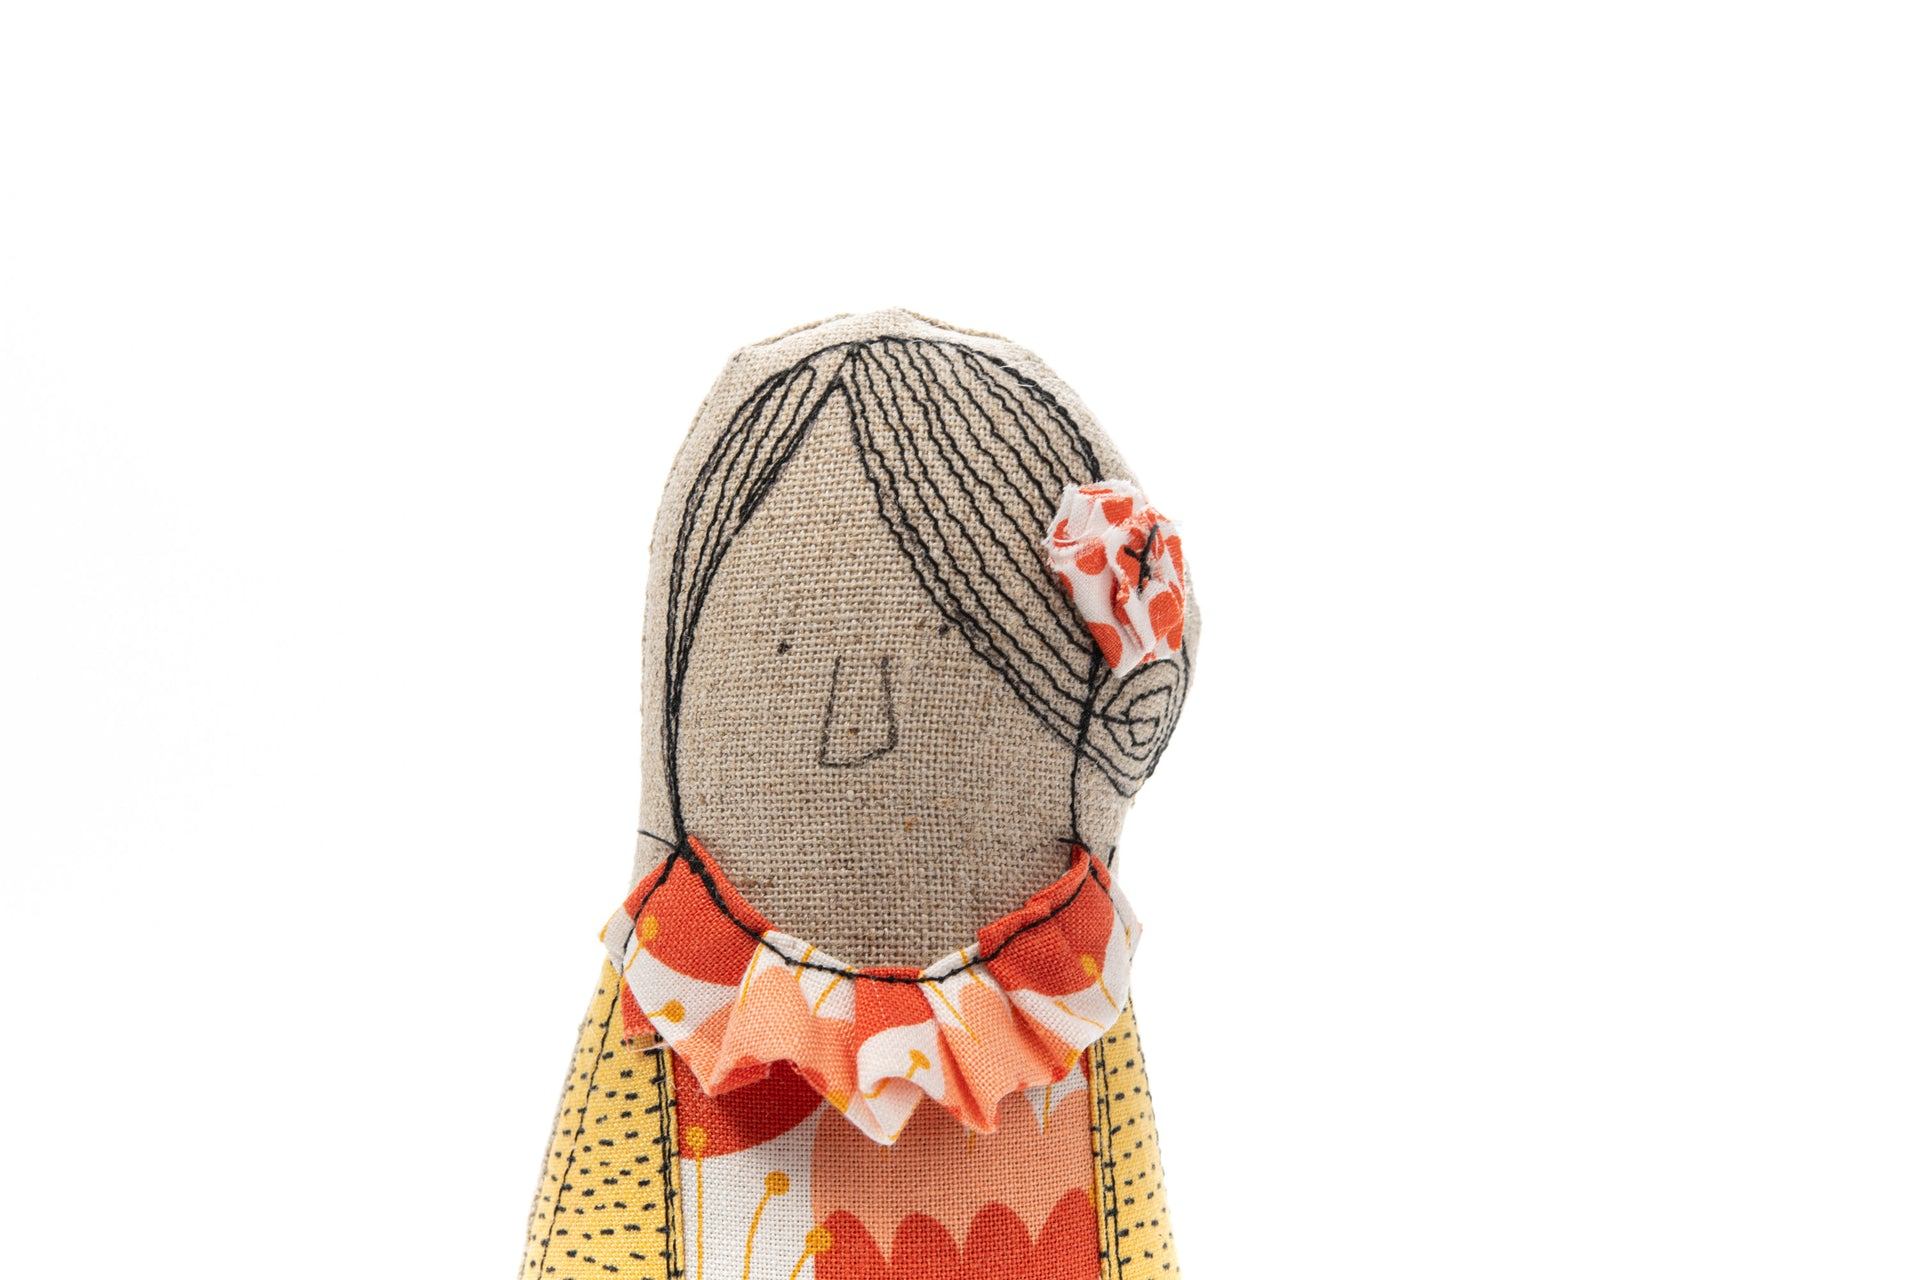 Art doll, Handmade fabric doll, Soft sculpture, Family dolls, Portrait doll, Woman doll, Textile doll, Fabric doll, Portrait doll, Mom doll